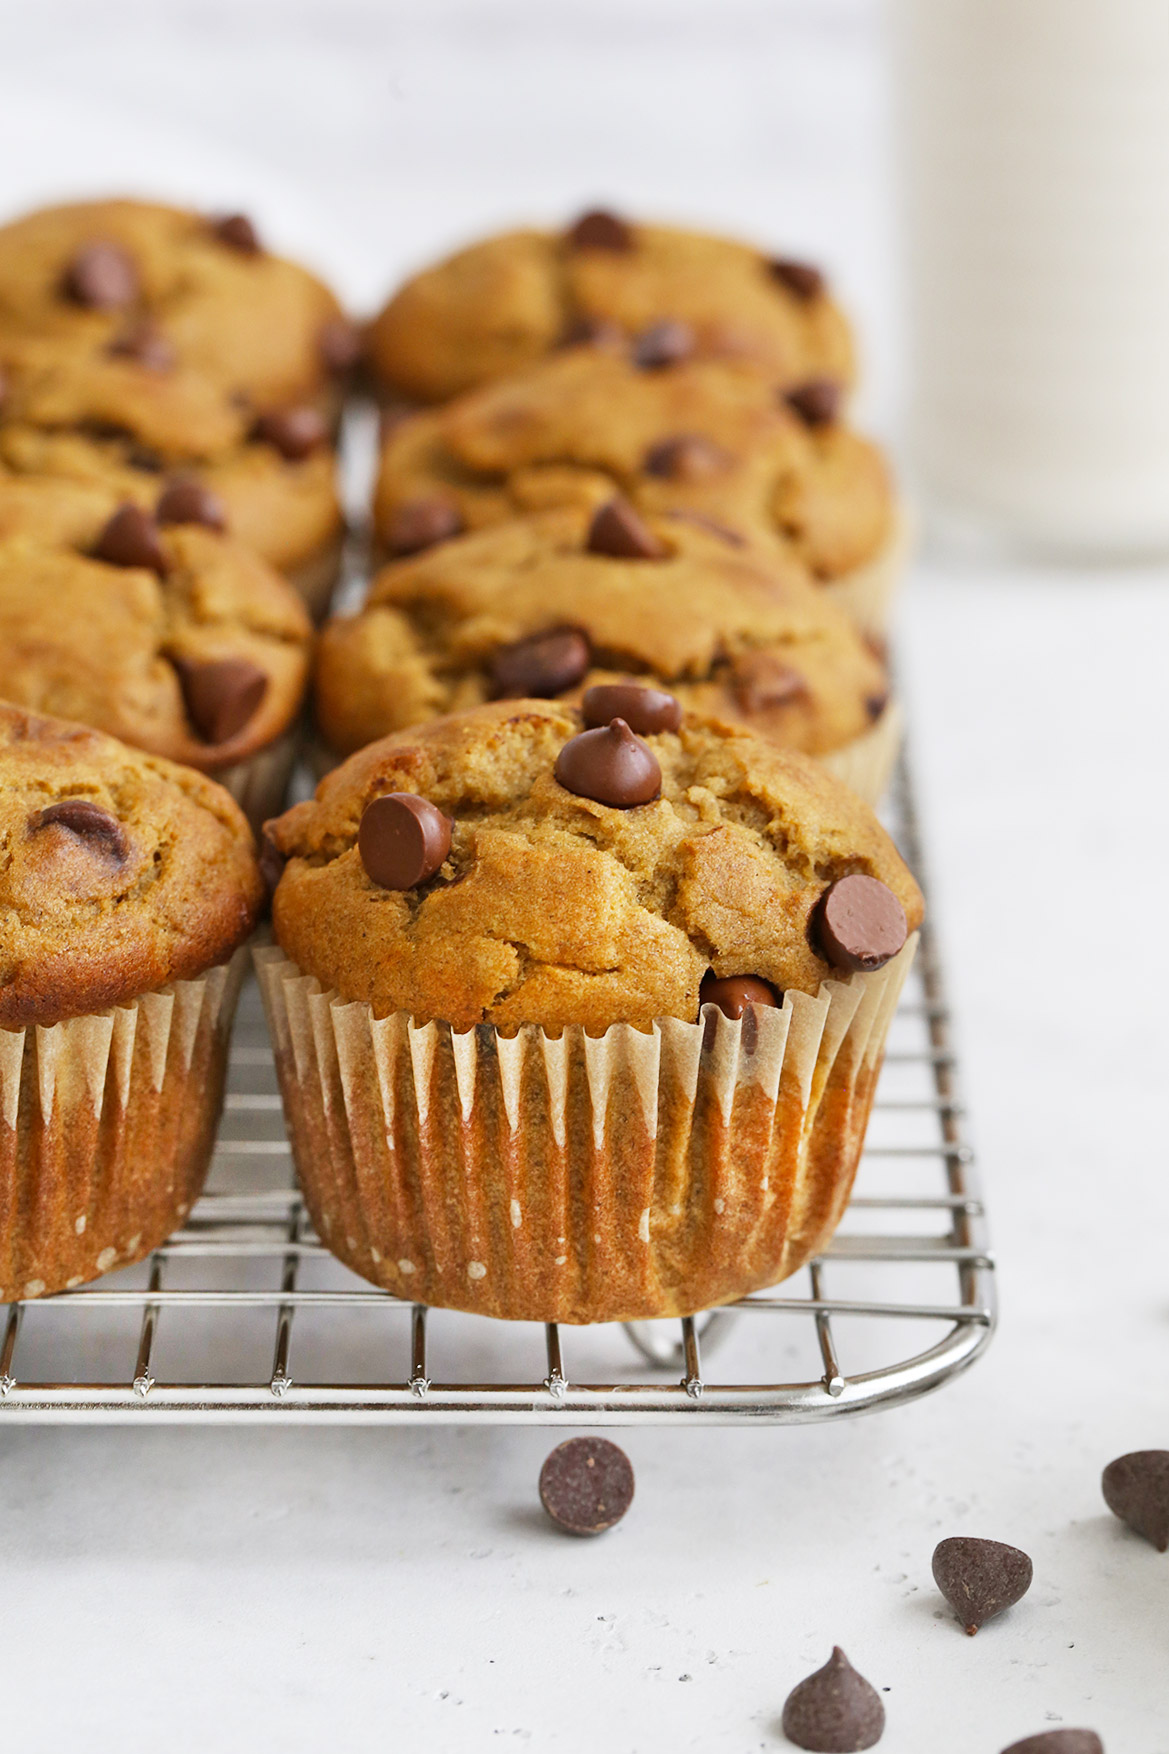 Front view of gluten-free banana chocolate chip muffins on a cooling rack.